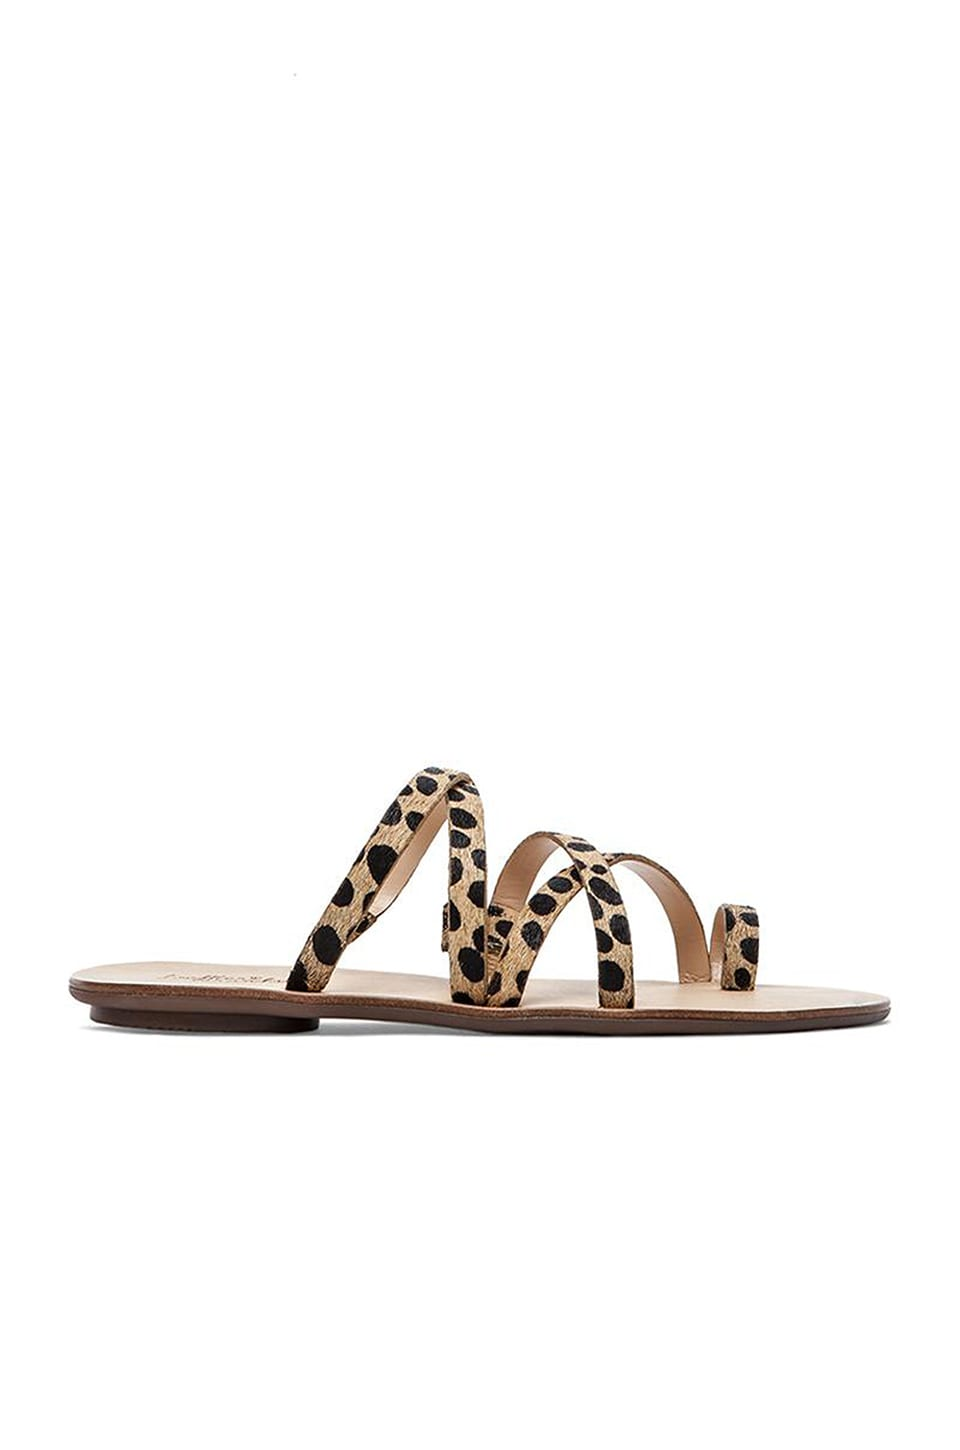 Loeffler Randall Sarie Calf Hair Sandal in Cheetah